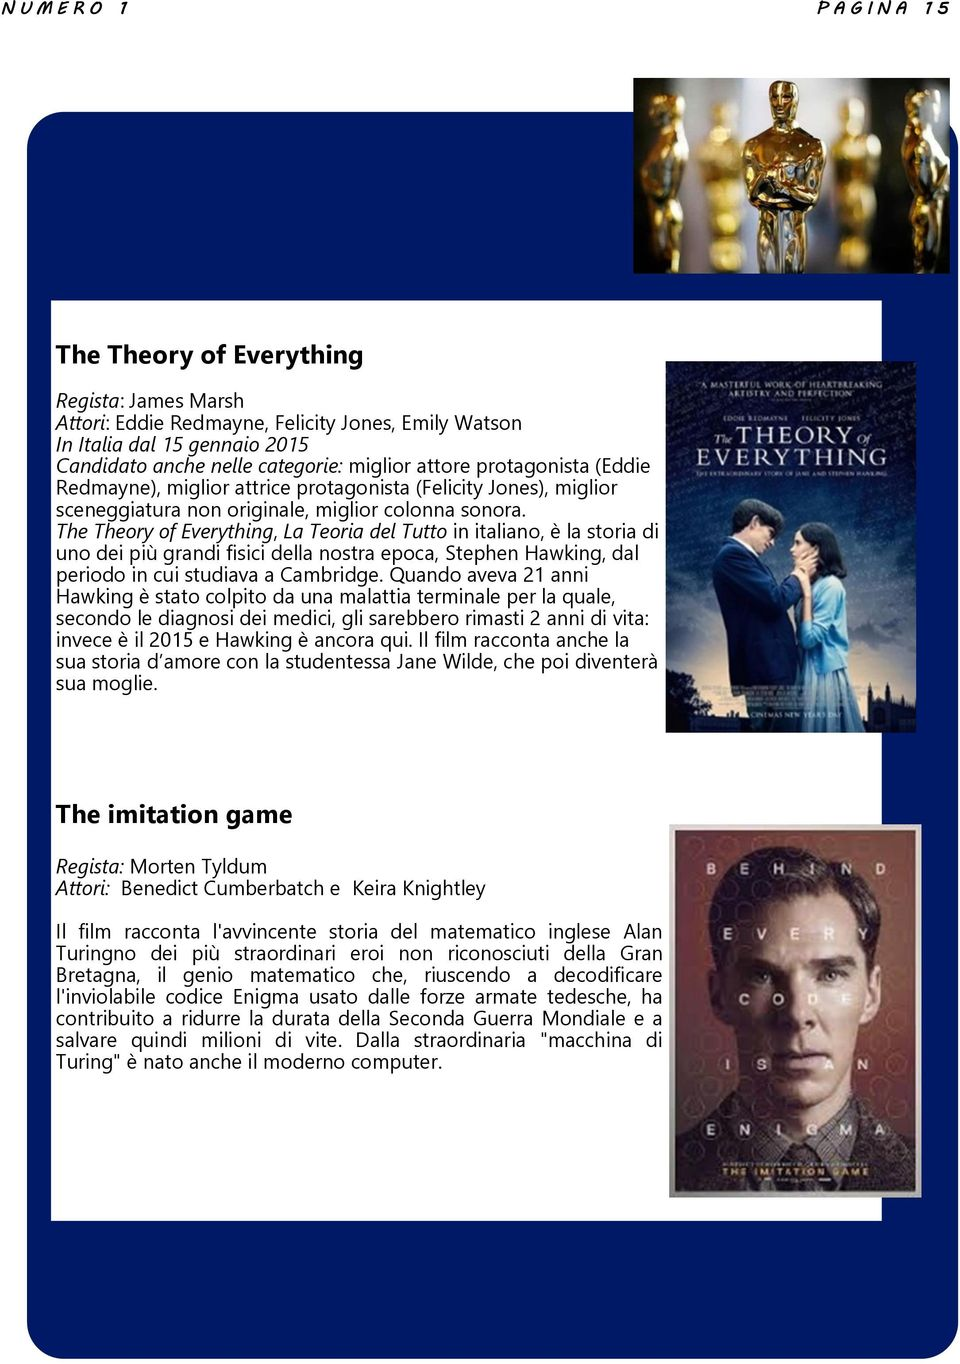 The Theory of Everything, La Teoria del Tutto in italiano, è la storia di uno dei più grandi fisici della nostra epoca, Stephen Hawking, dal periodo in cui studiava a Cambridge.